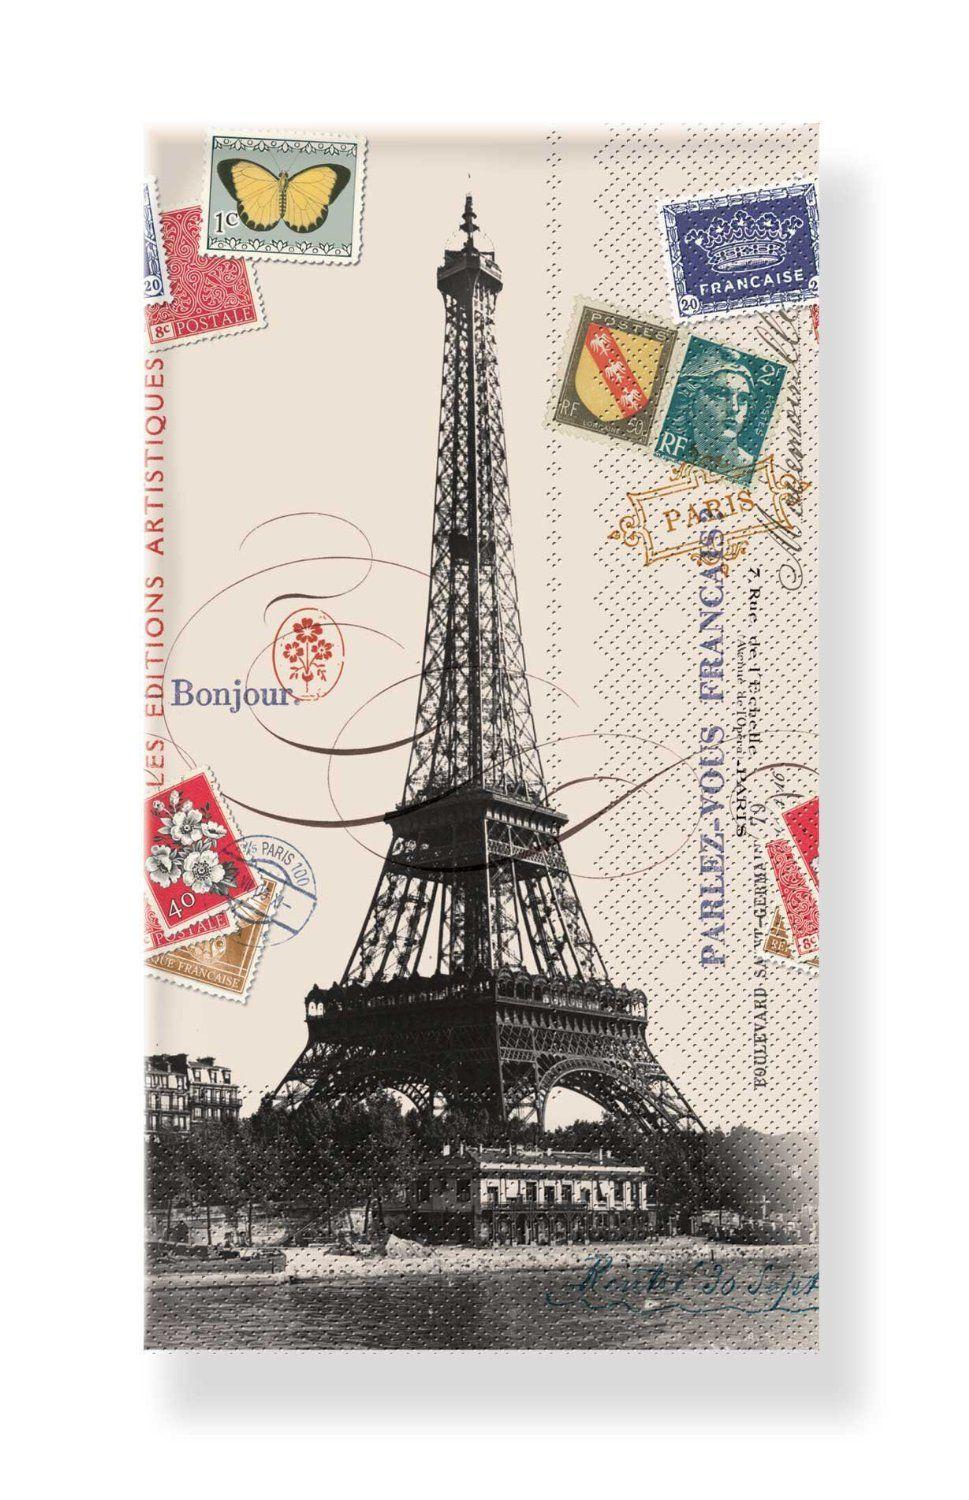 Amazon.com: Napkin/Guest Towel - Eiffel Tower w/Vintage Postal Stamps - Pkg of 32, a GREAT VALUE: Kitchen & Dining .47 cents each